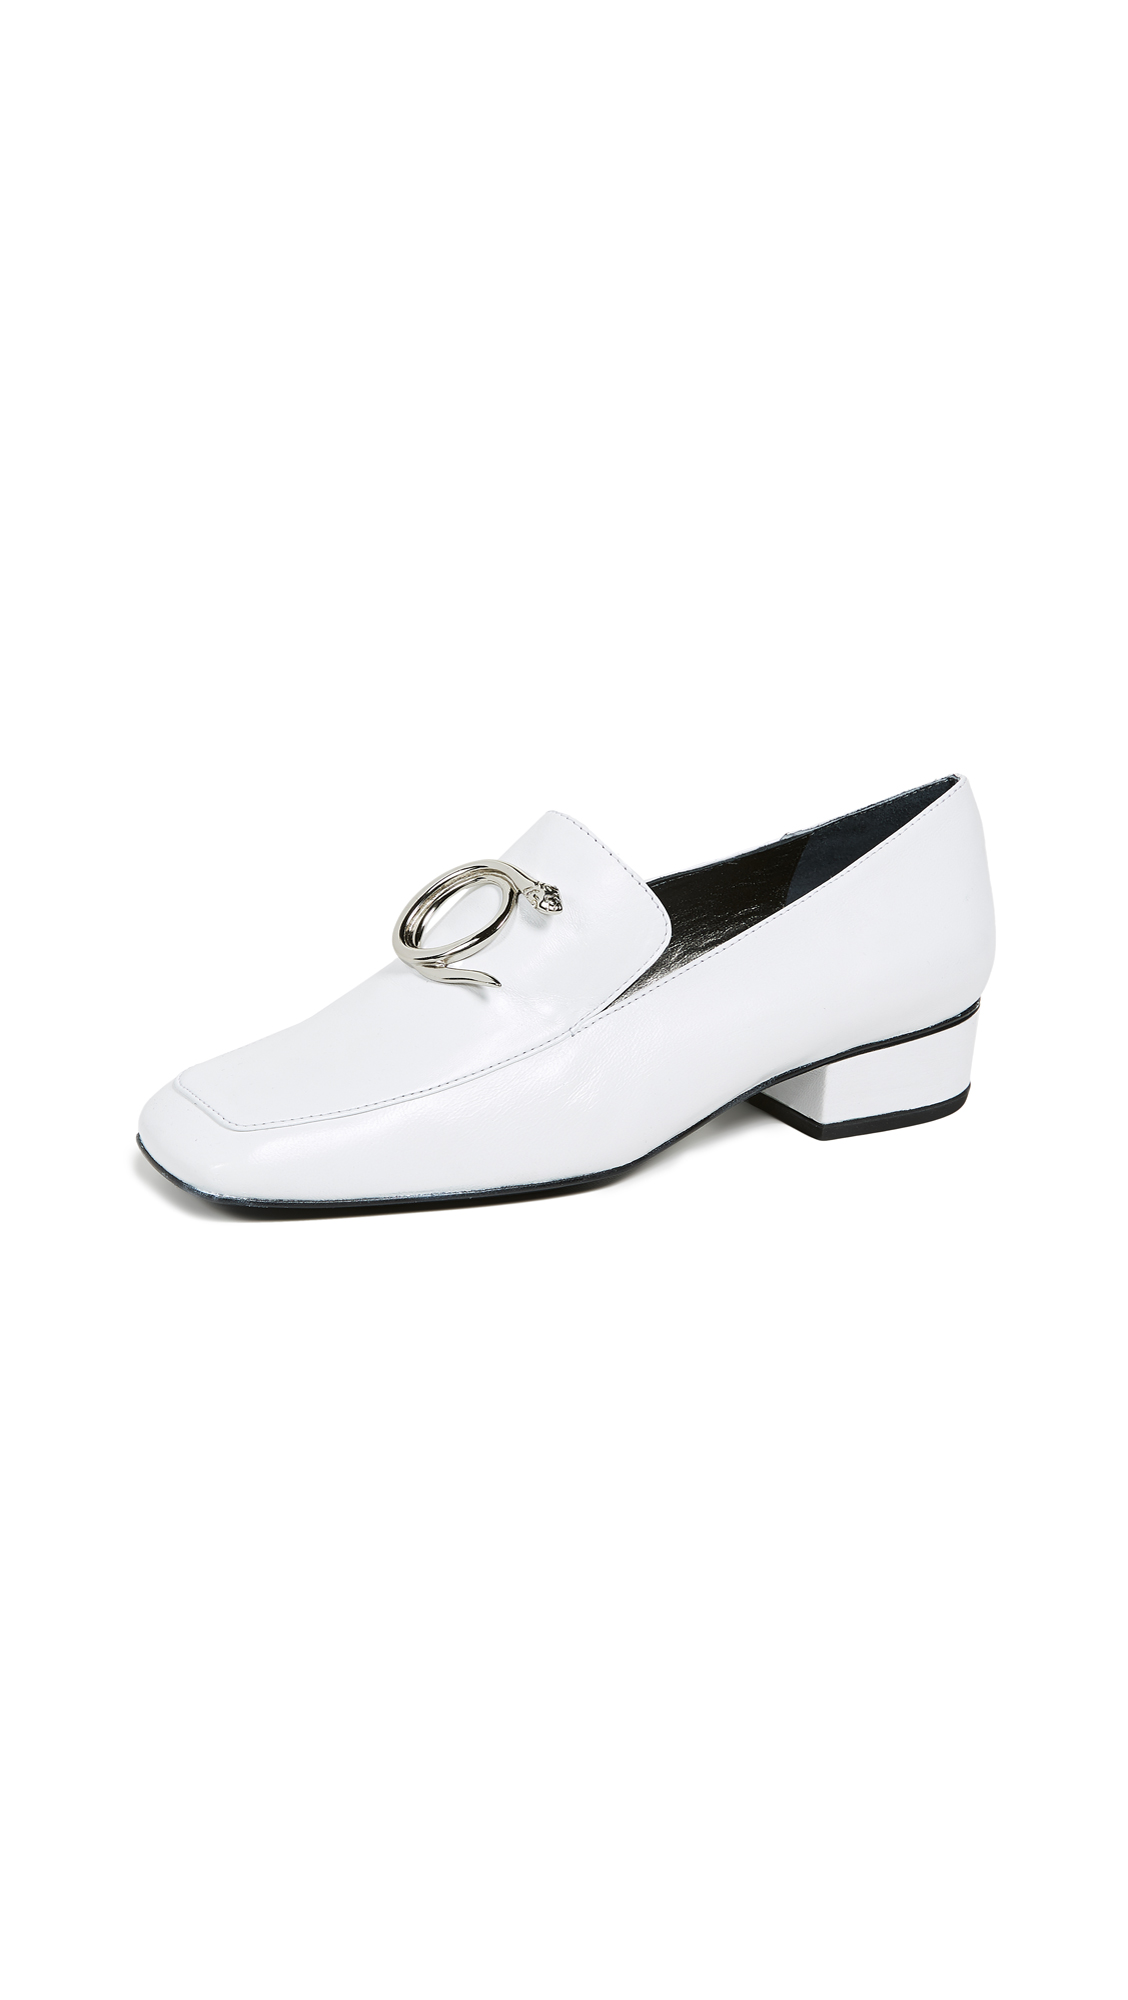 Dorateymur Han Serpent Loafers - White